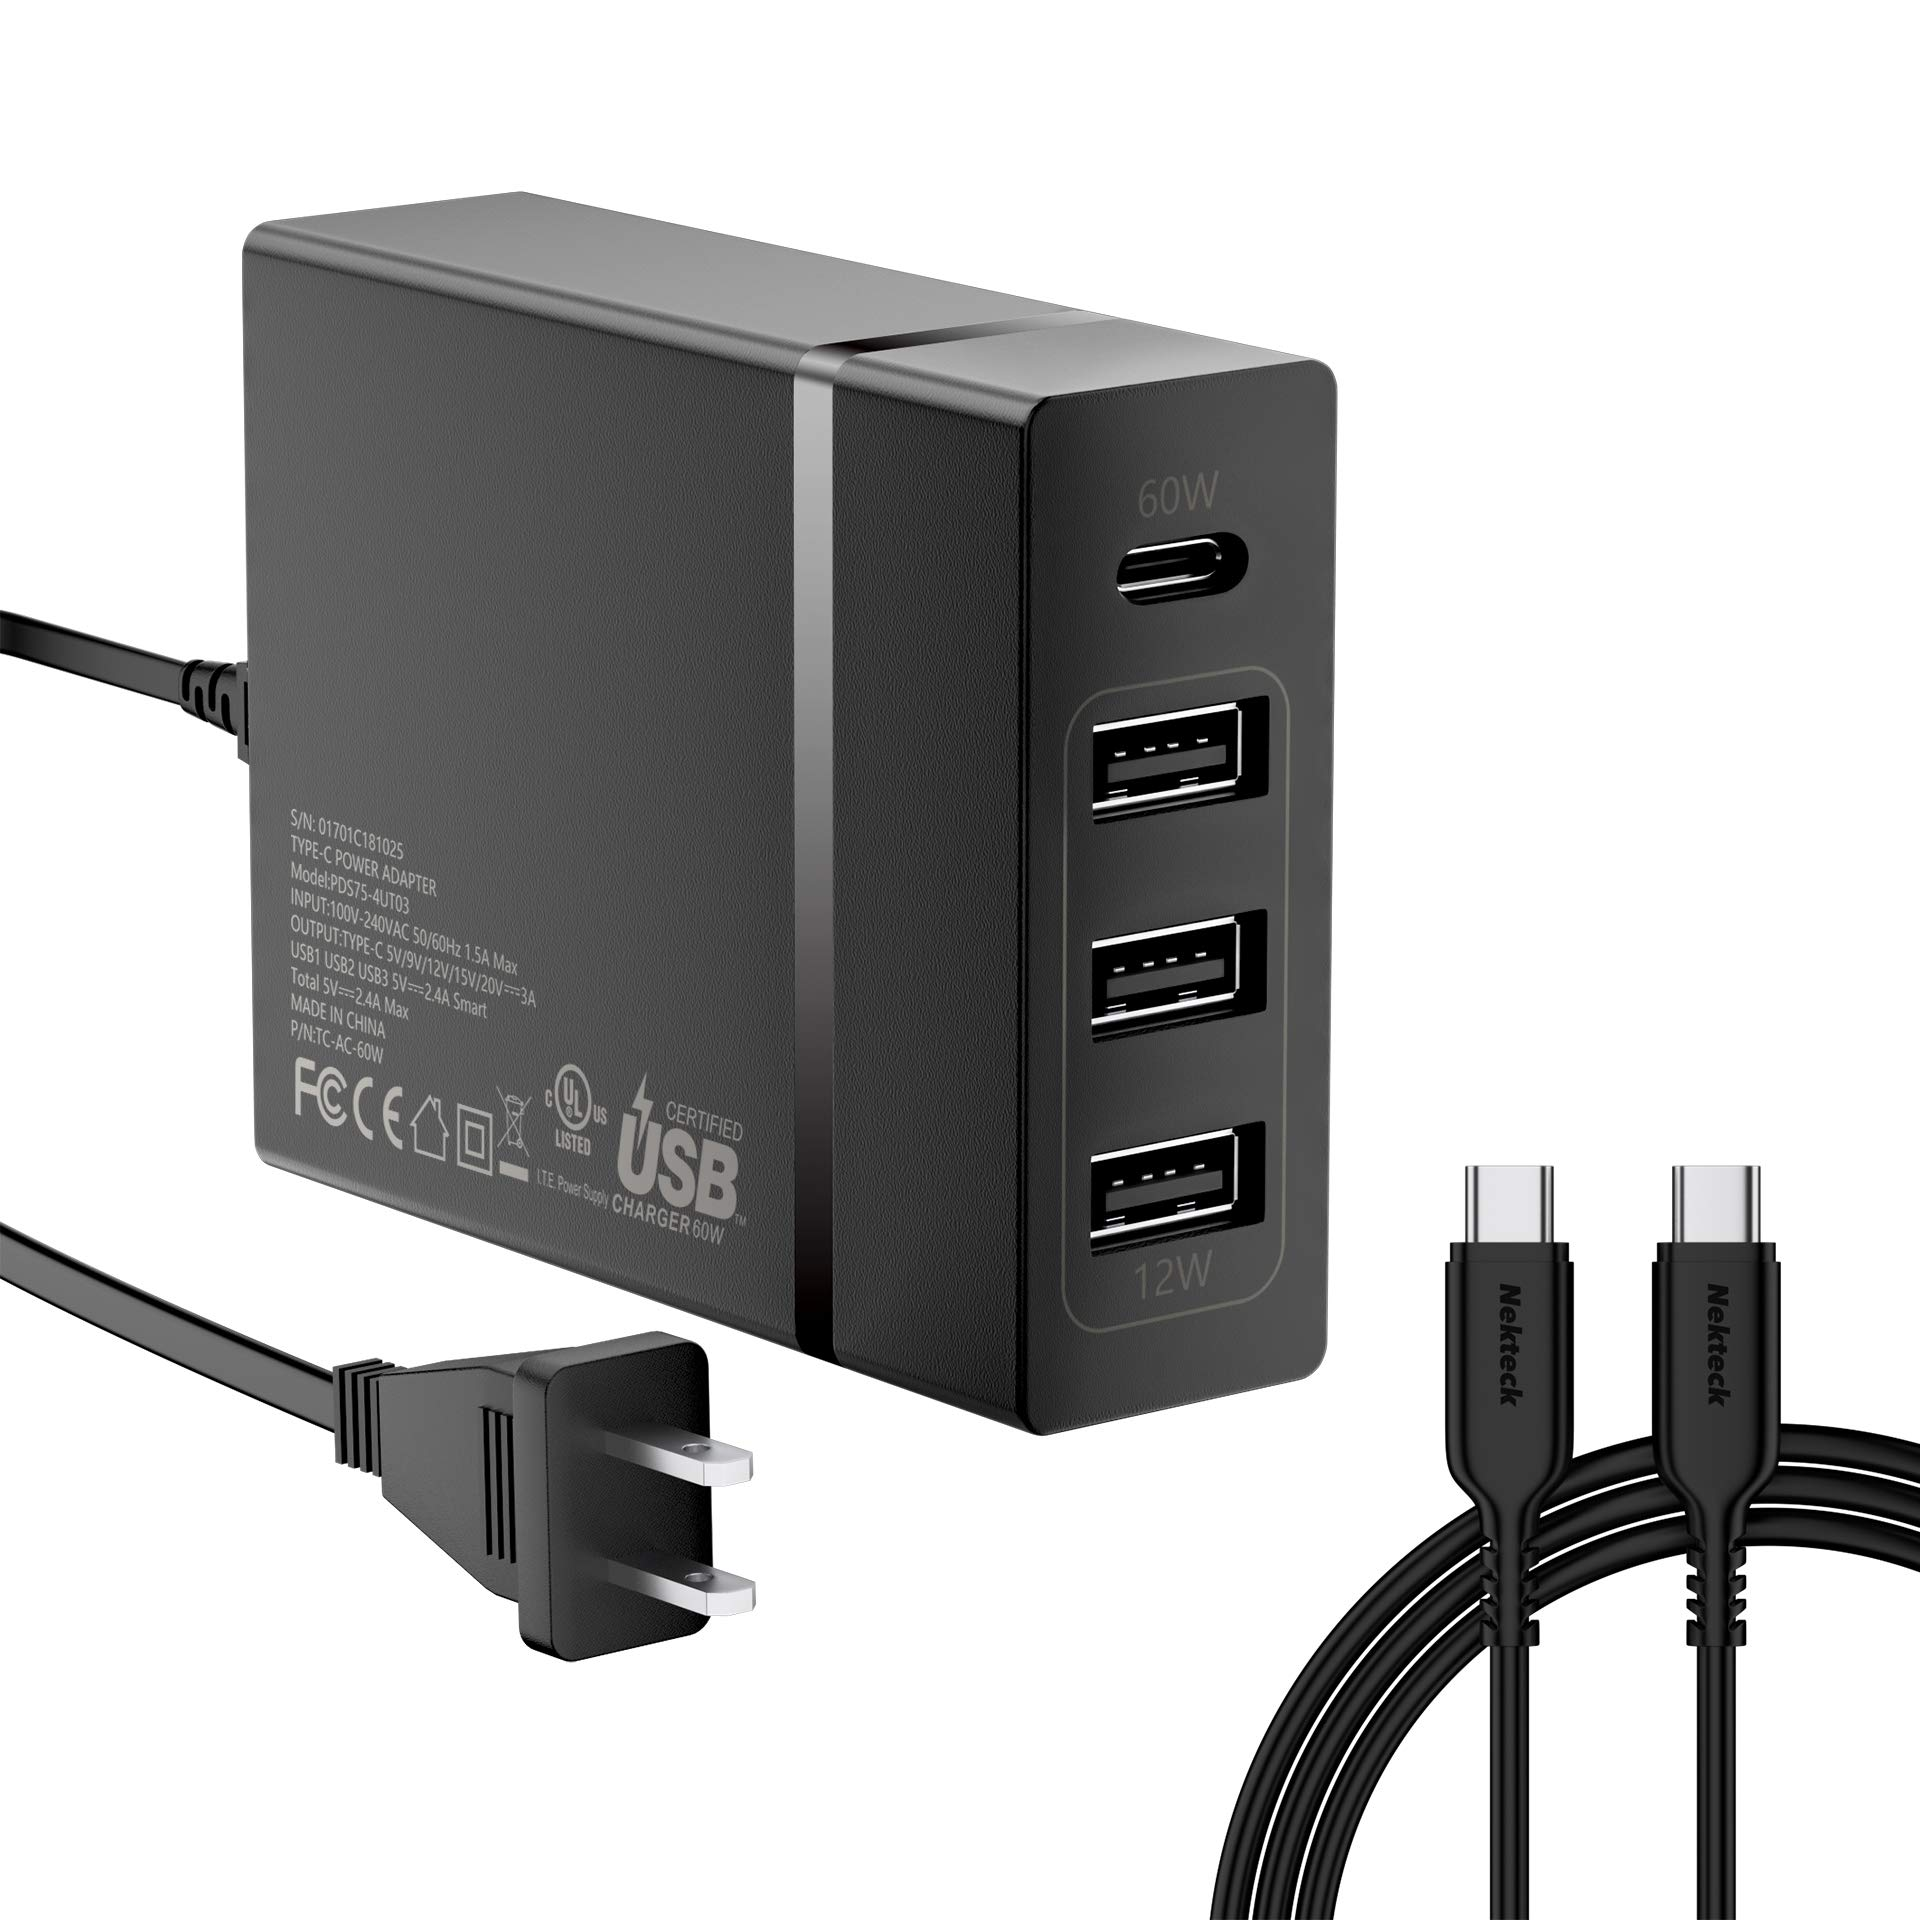 USB C Wall Charger, Nekteck 72W USB Wall Charger with 4 USB Ports, One 60W Type C Power Delivery Port for Type C Laptops,MacBook Pro, iPad Pro 2018, and 3 Ports for Galaxy S10/S9, iPad, Pixel and More by Nekteck